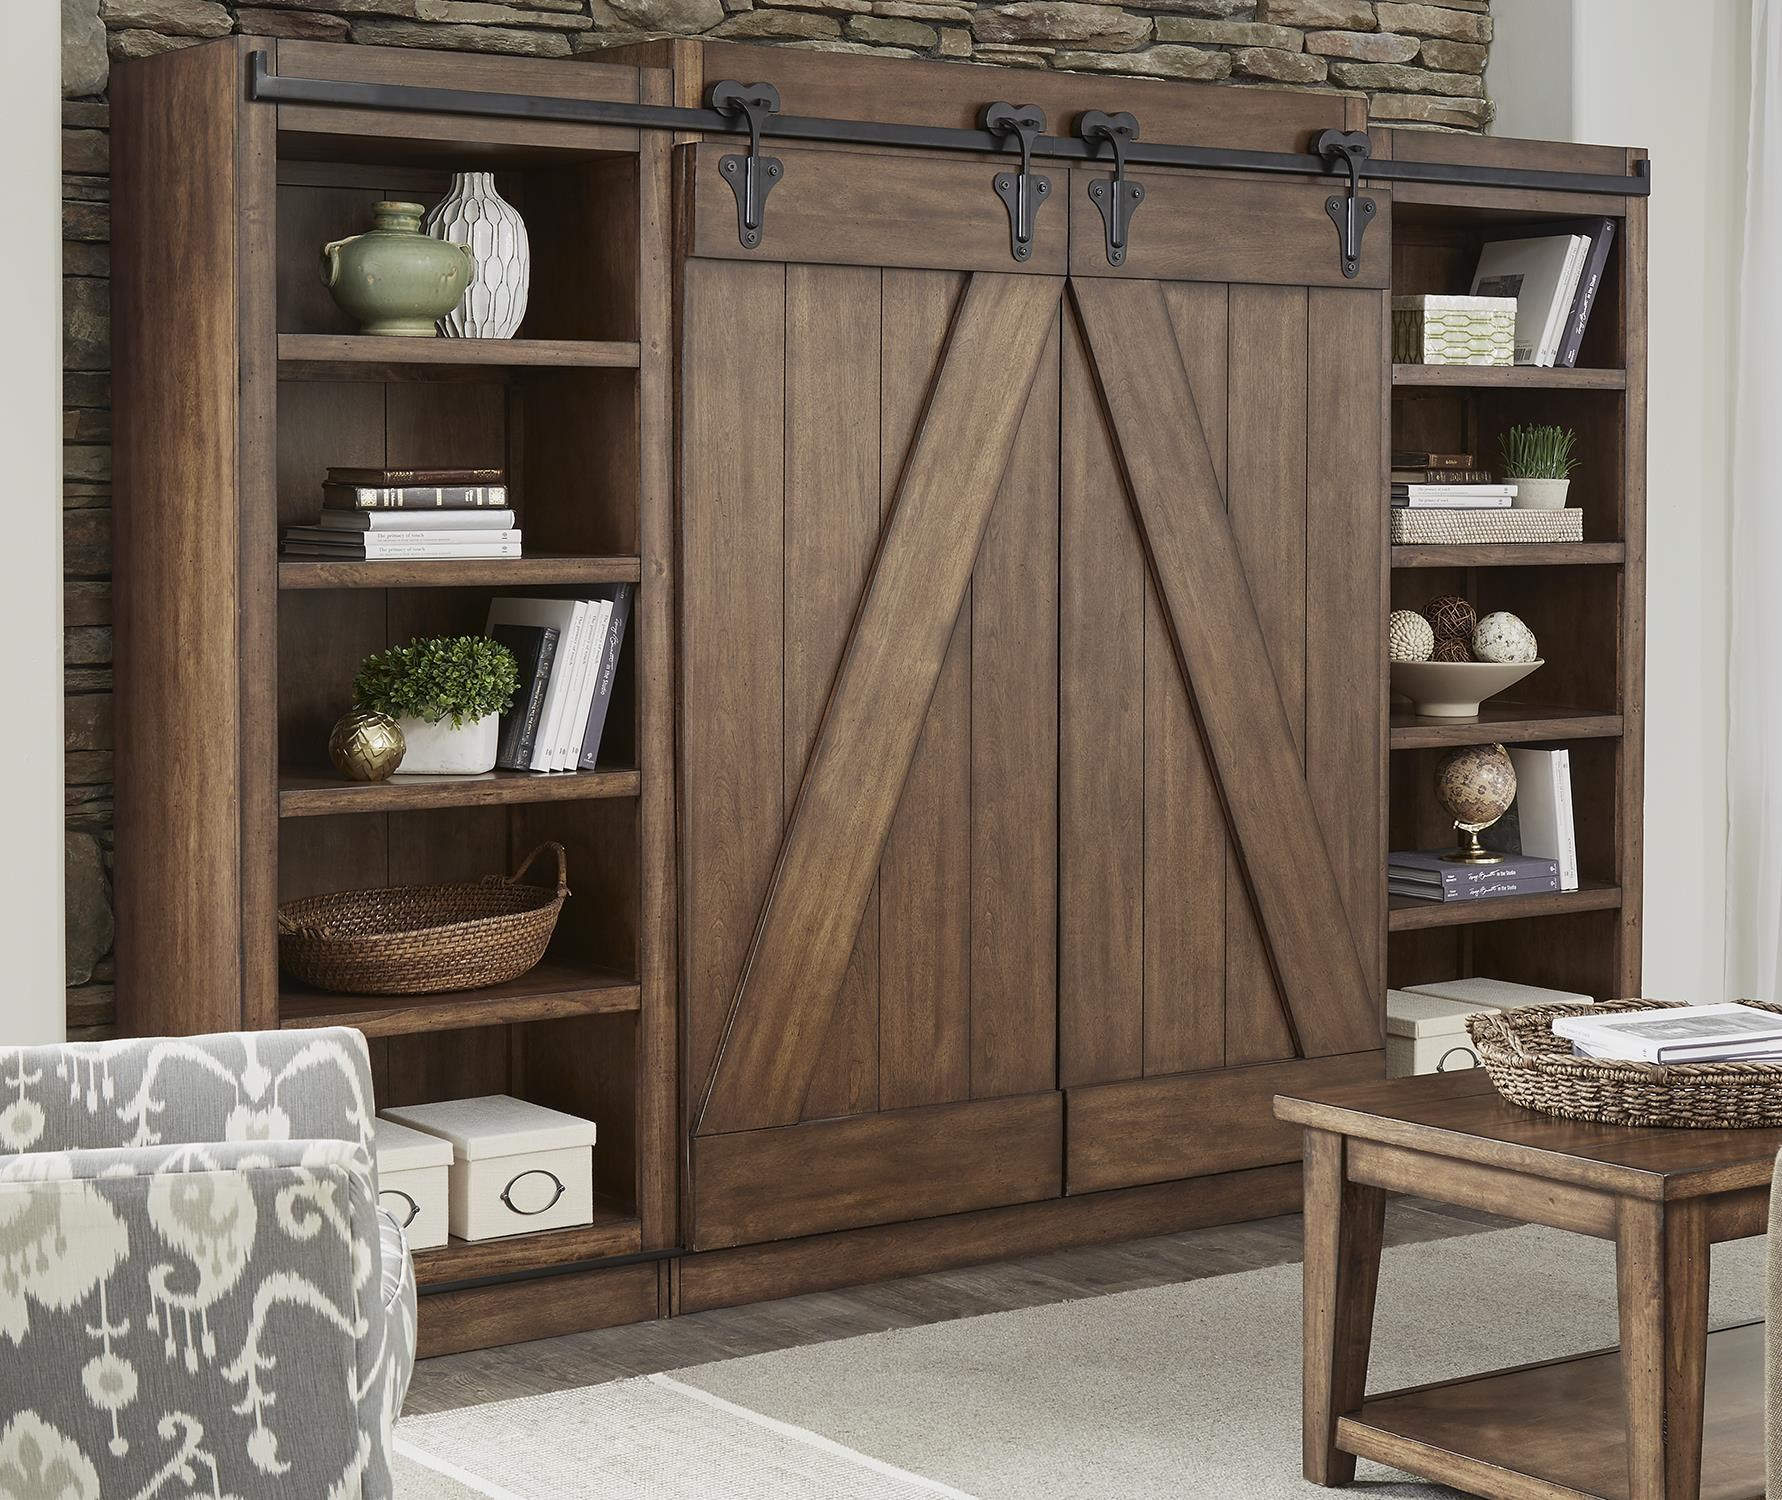 Etonnant Willow Creek Entertainment Center With Piers And Sliding Barn Doors By  Liberty Furniture At Rotmans